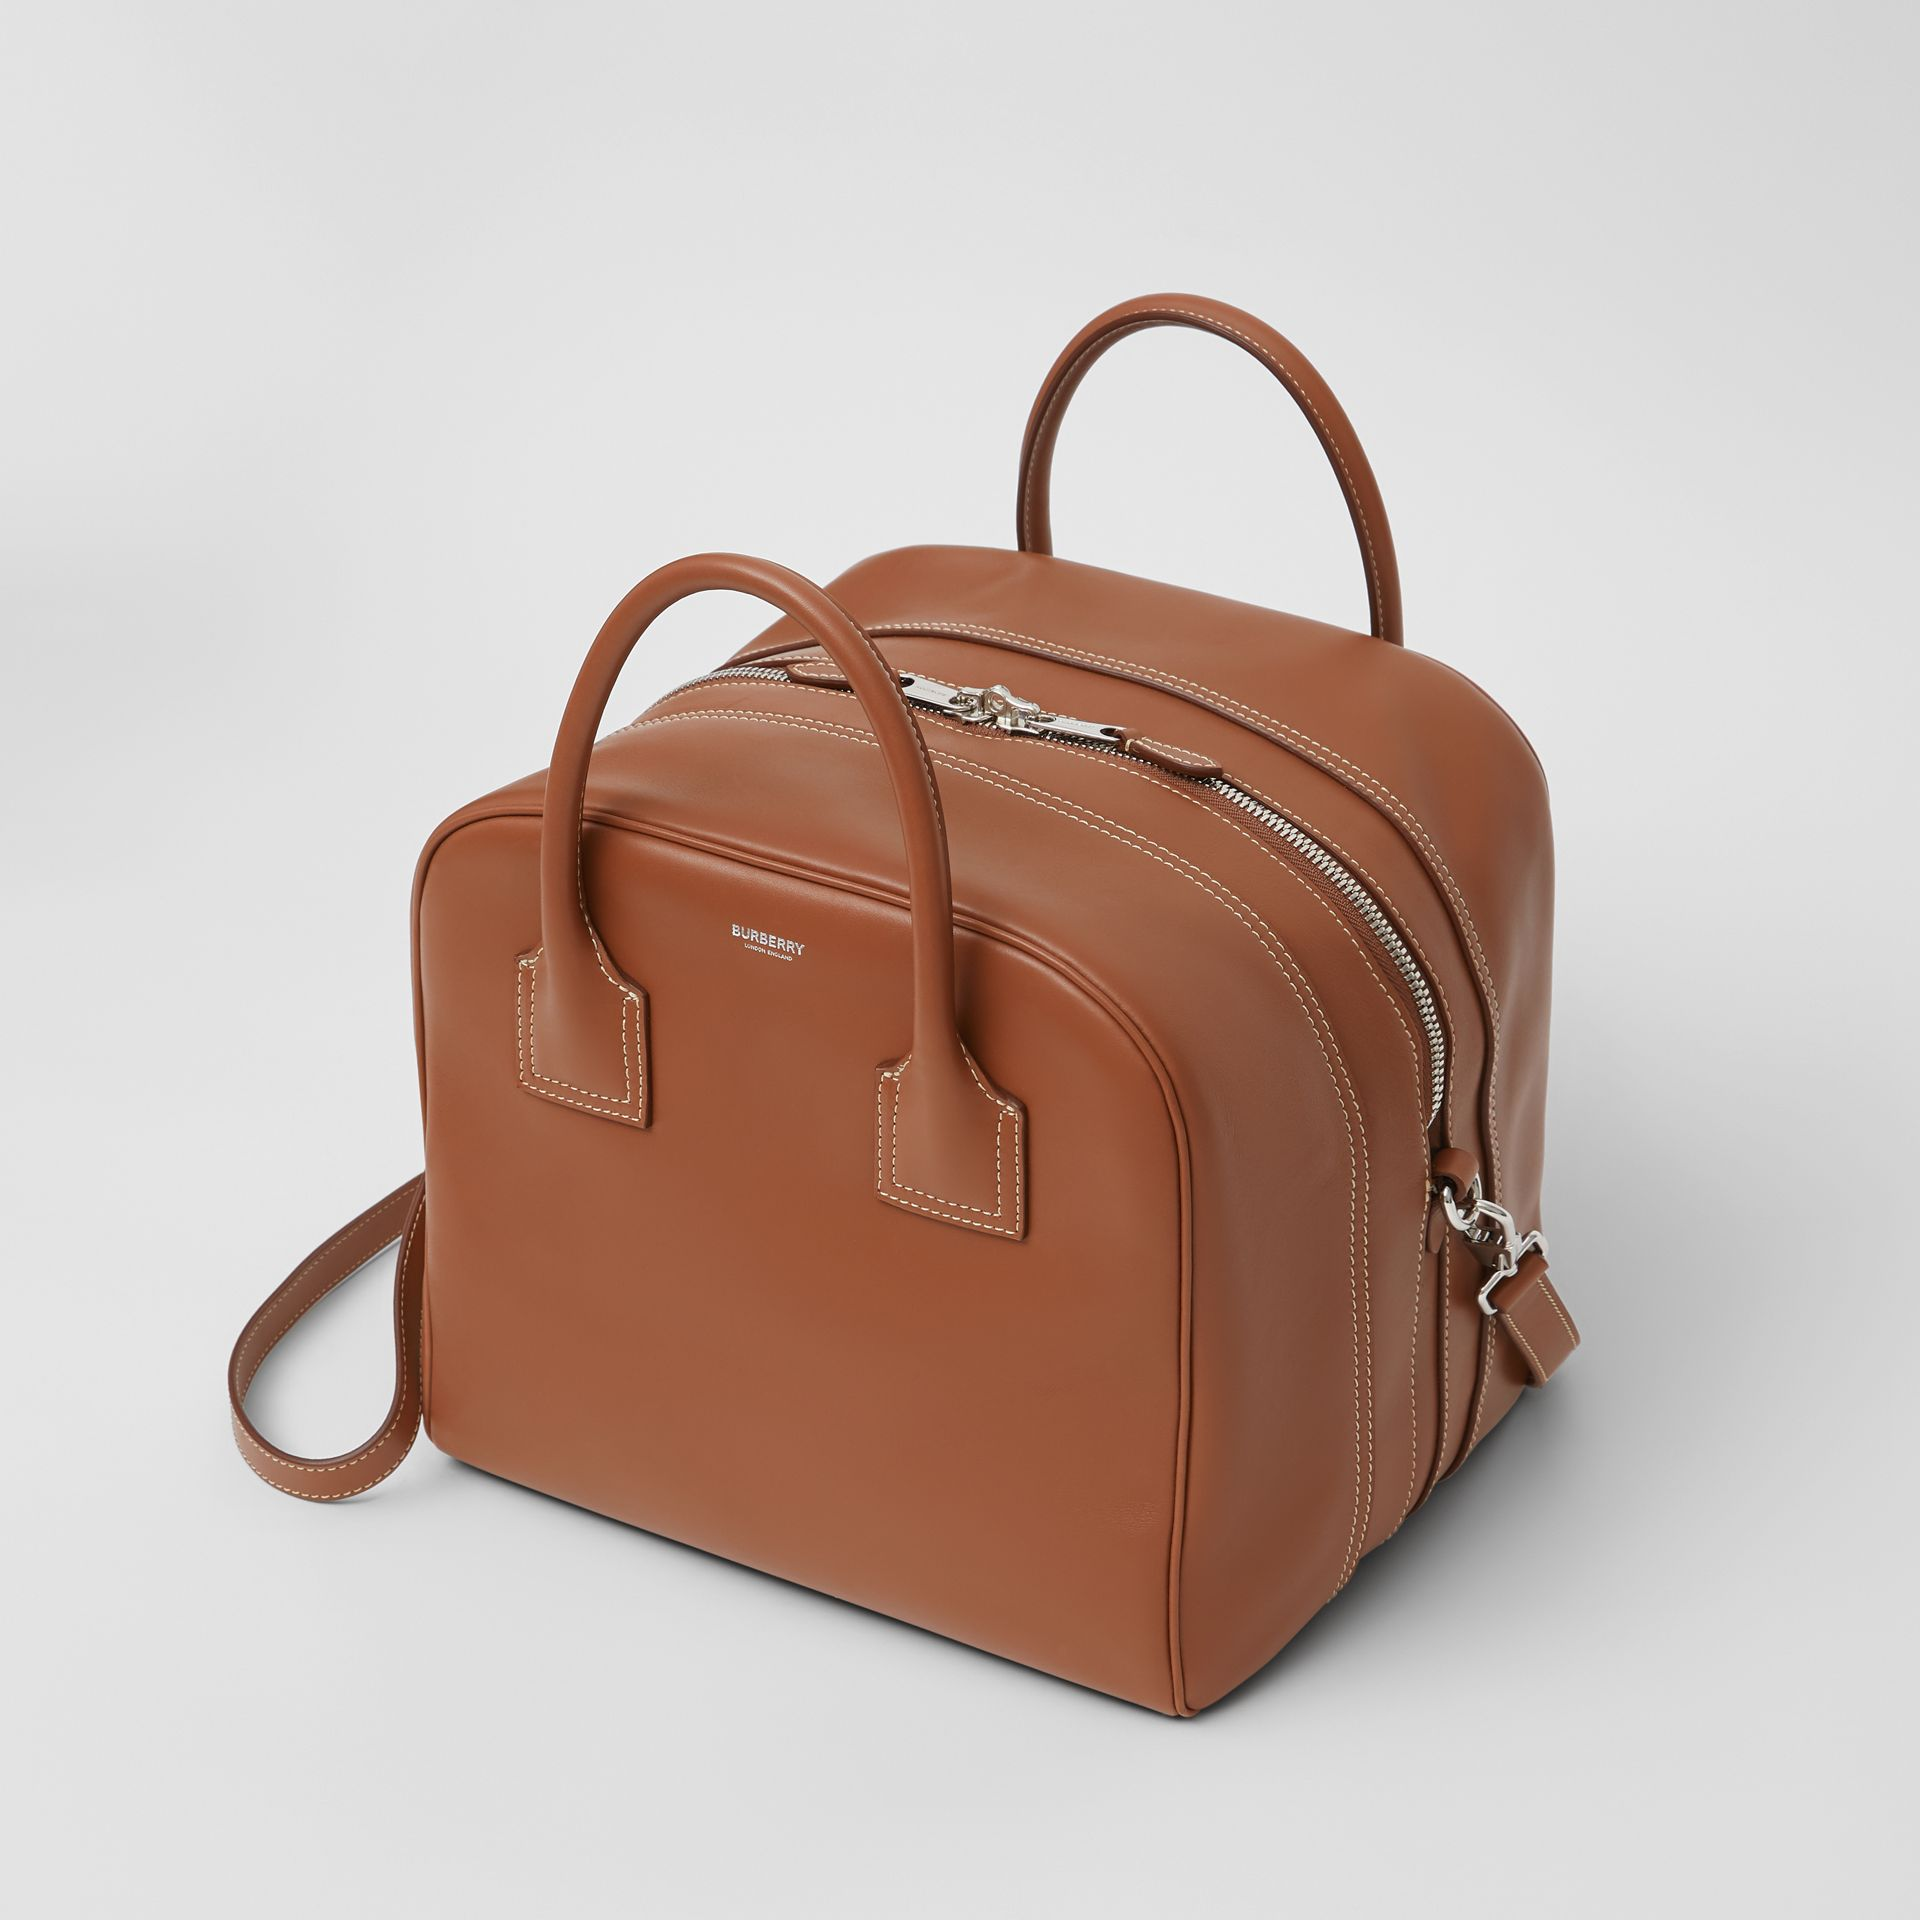 Medium Leather Cube Bag in Malt Brown - Women | Burberry - gallery image 3